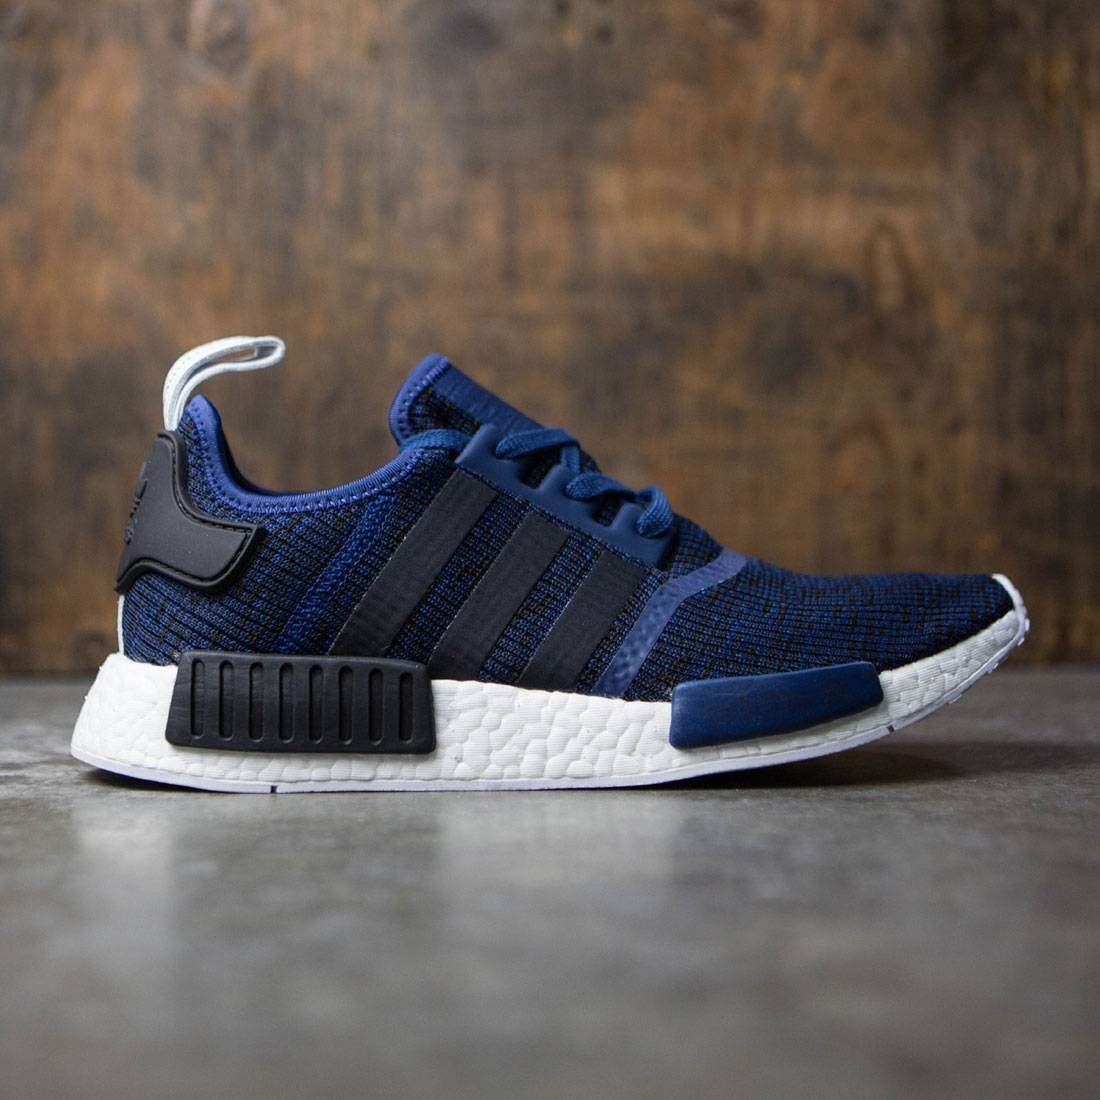 finest selection 4d4a8 e88e9 adidas NMD R1 PK Winter Wool Black Glitch 11.5